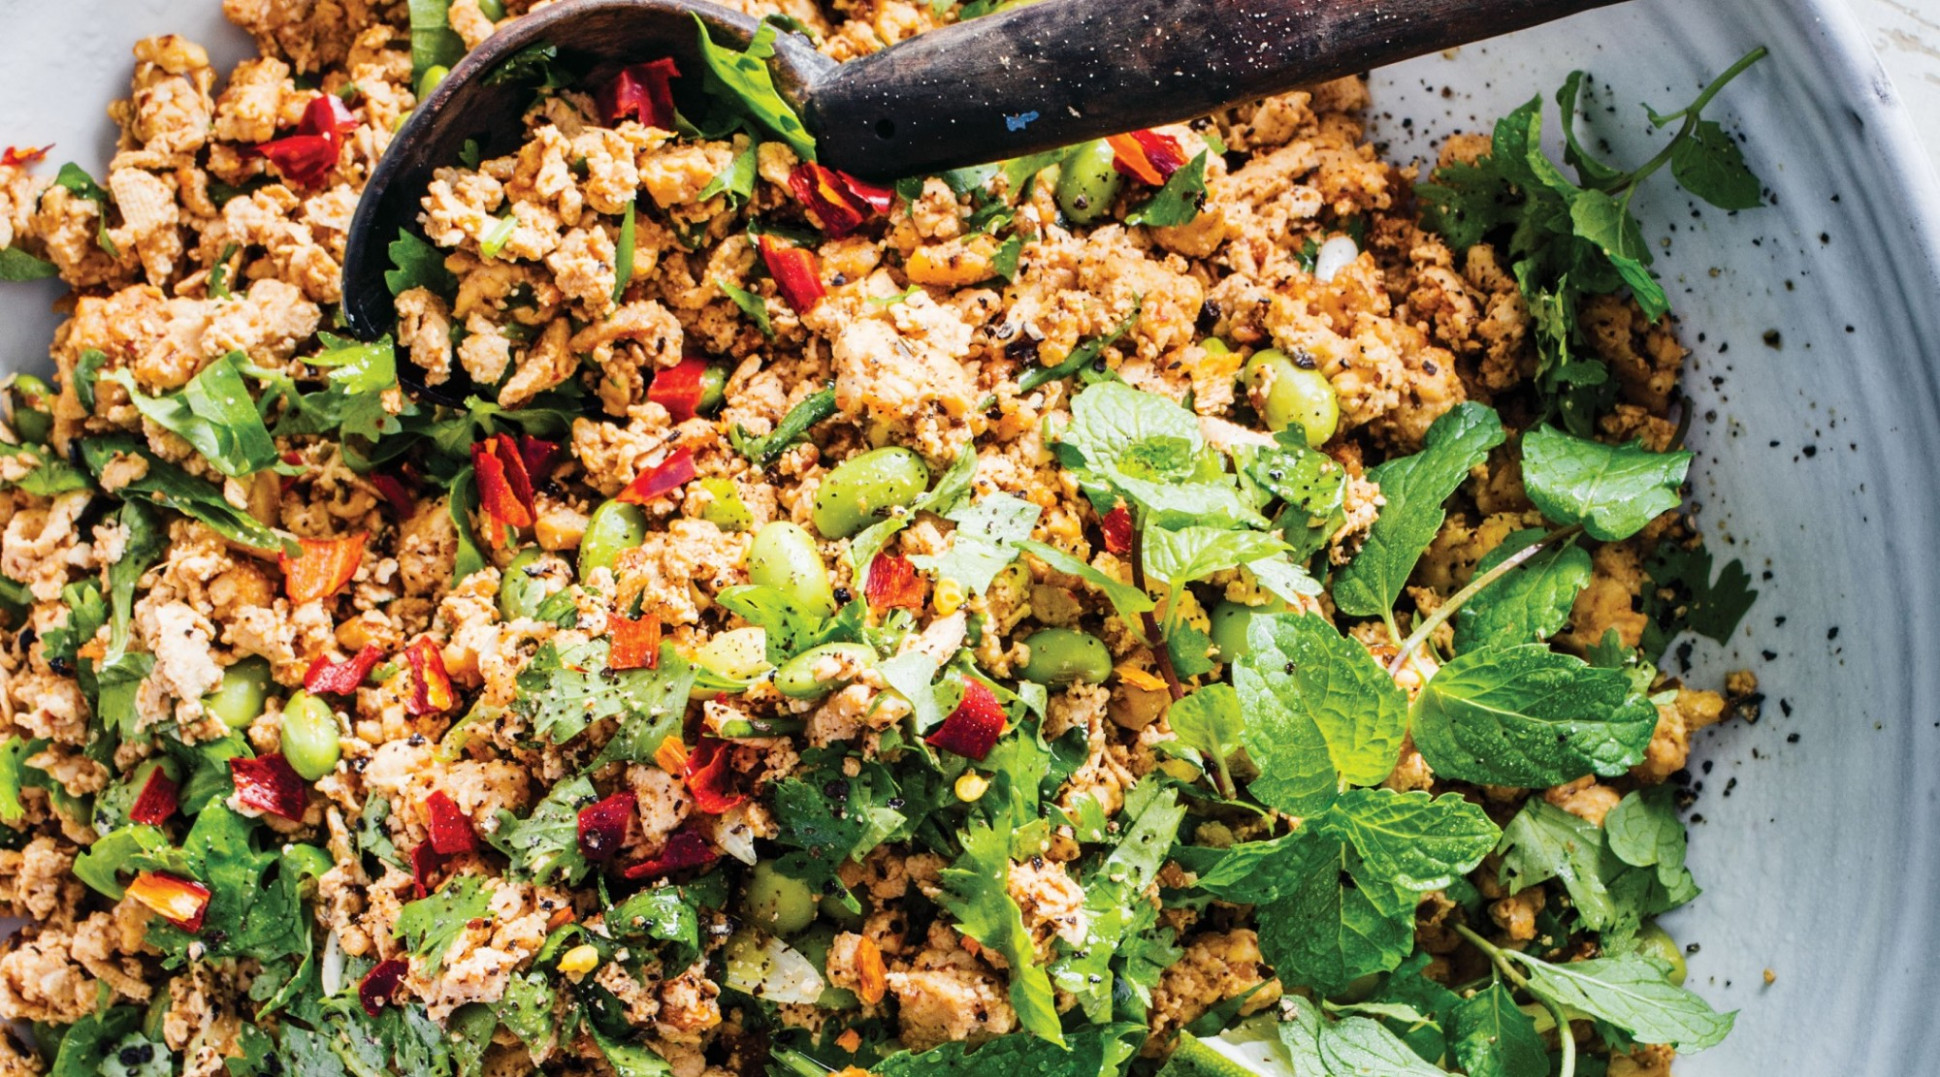 Shredded Tofu With Spicy Ground Chicken And Edamame - Recipes For Shredded Chicken